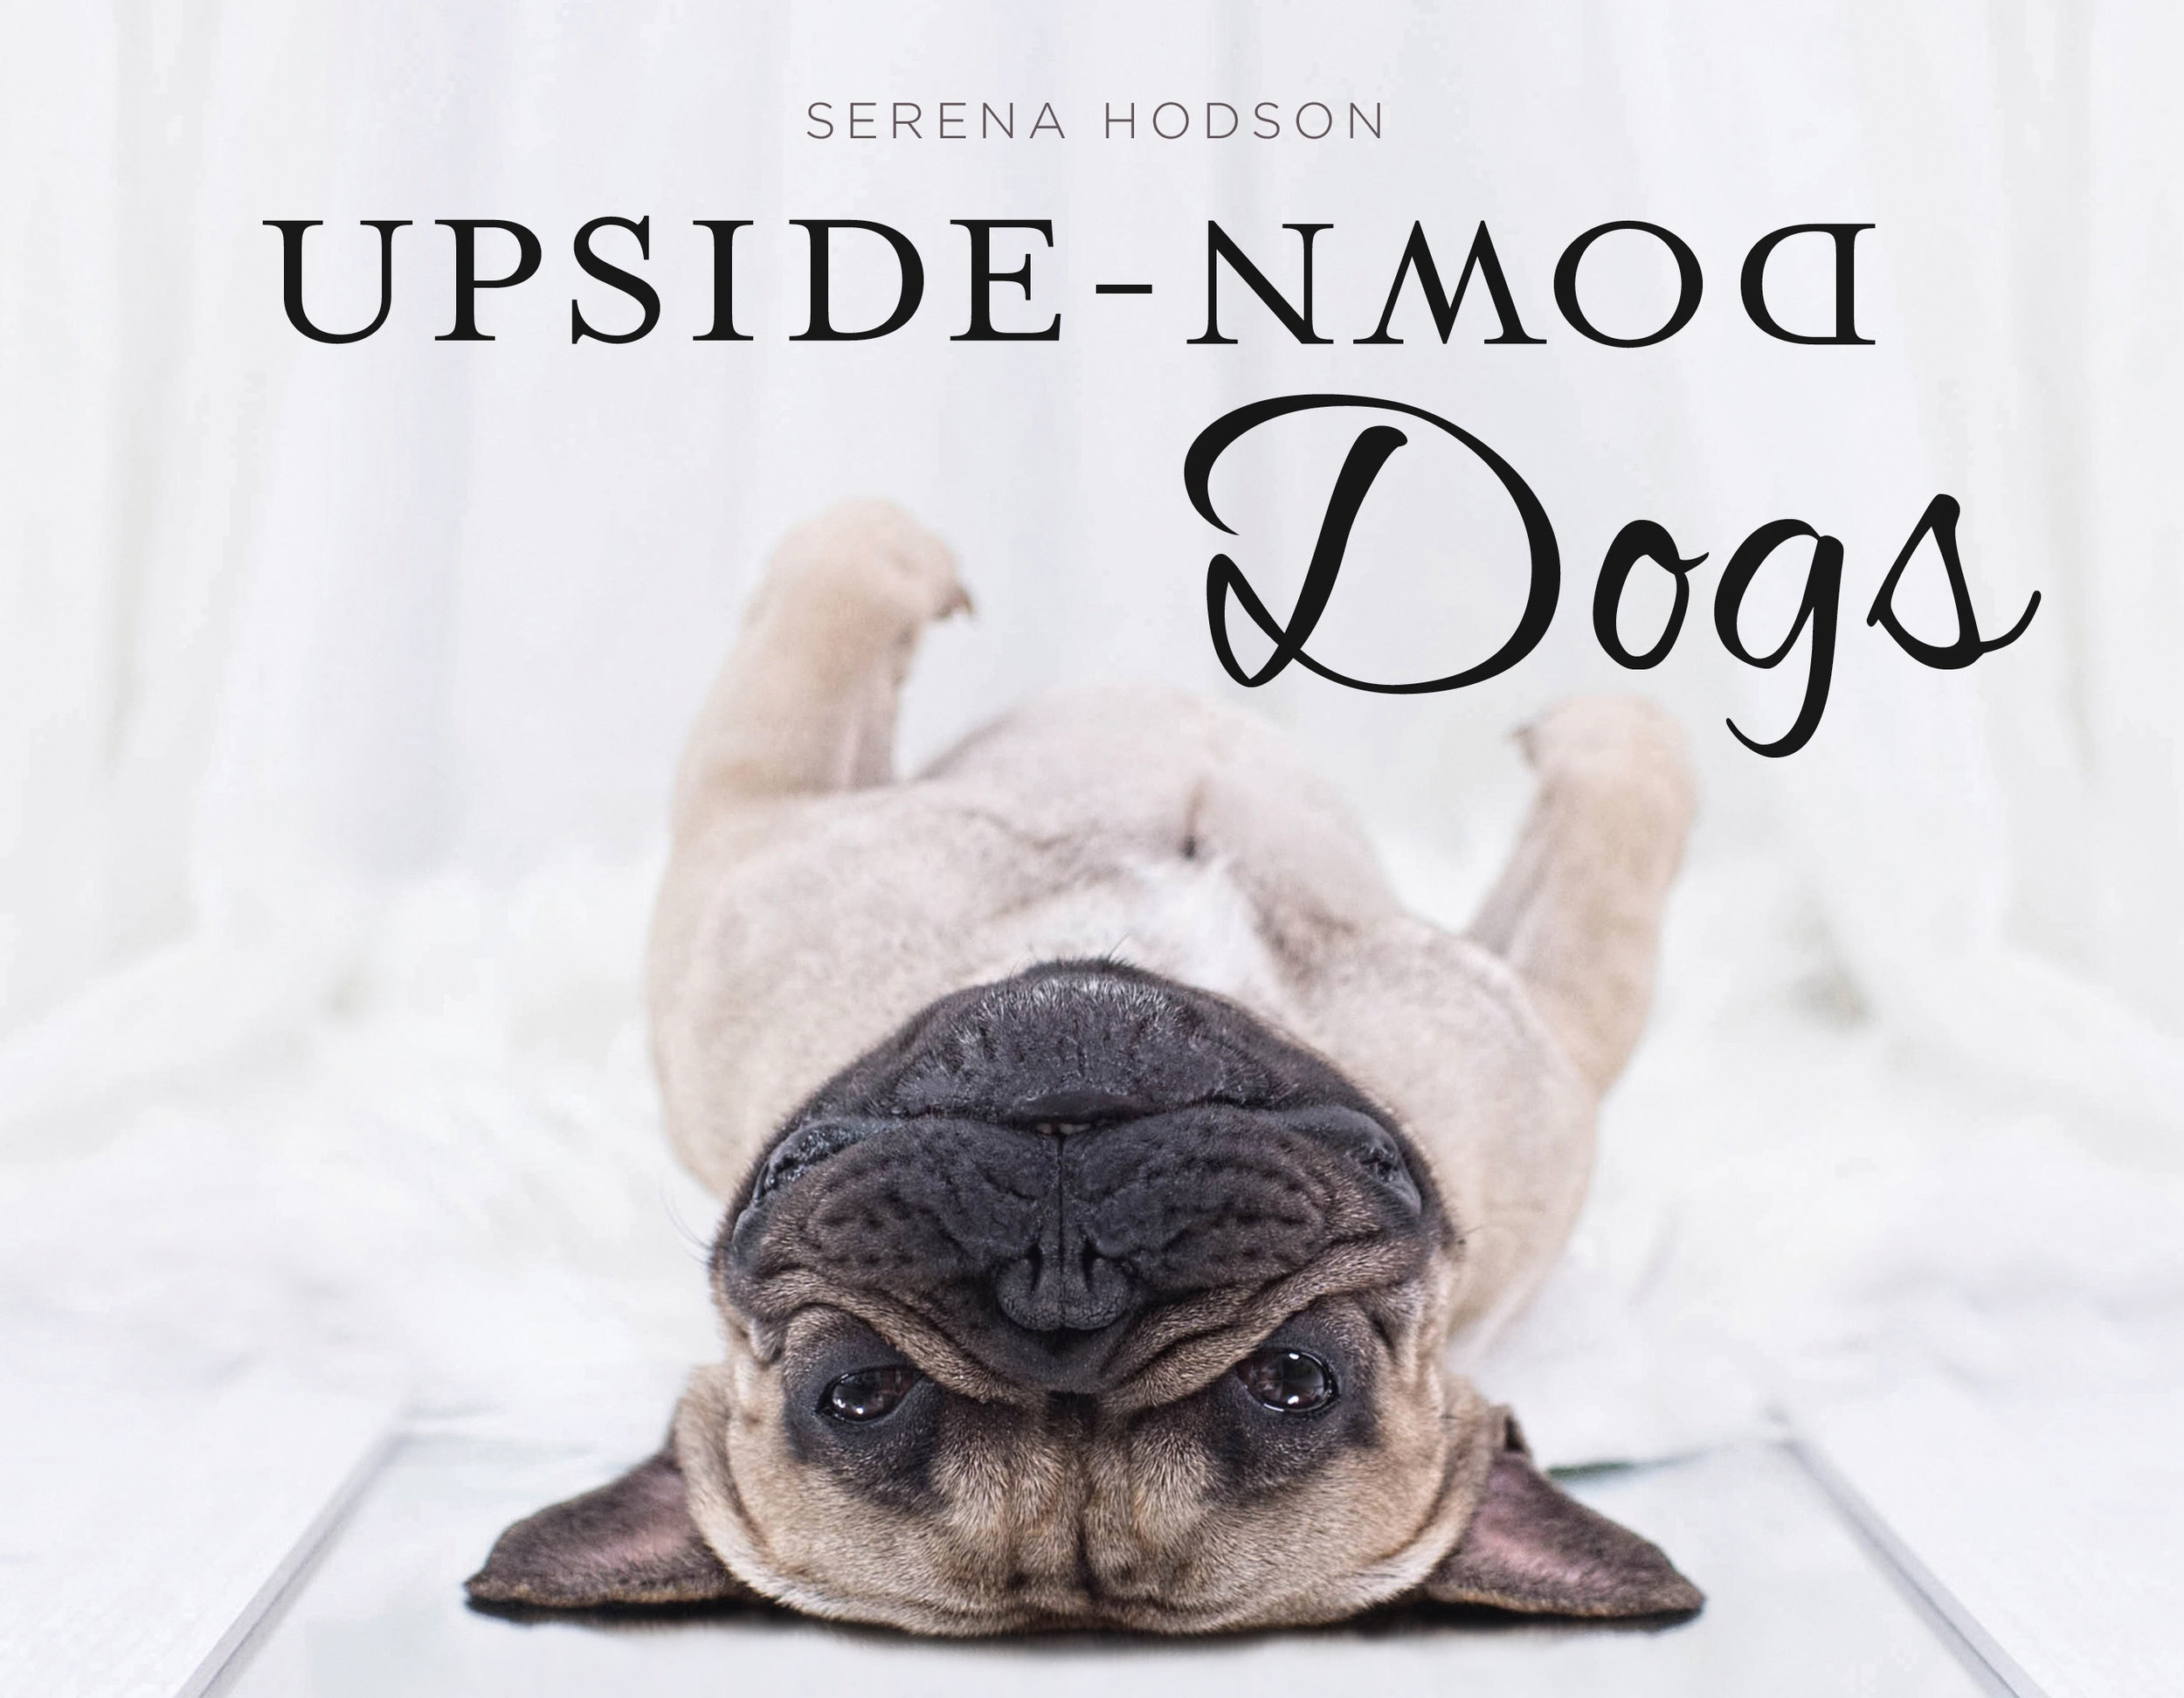 Upside Down Dogs - Serena Hodson Rating: 5 / 5